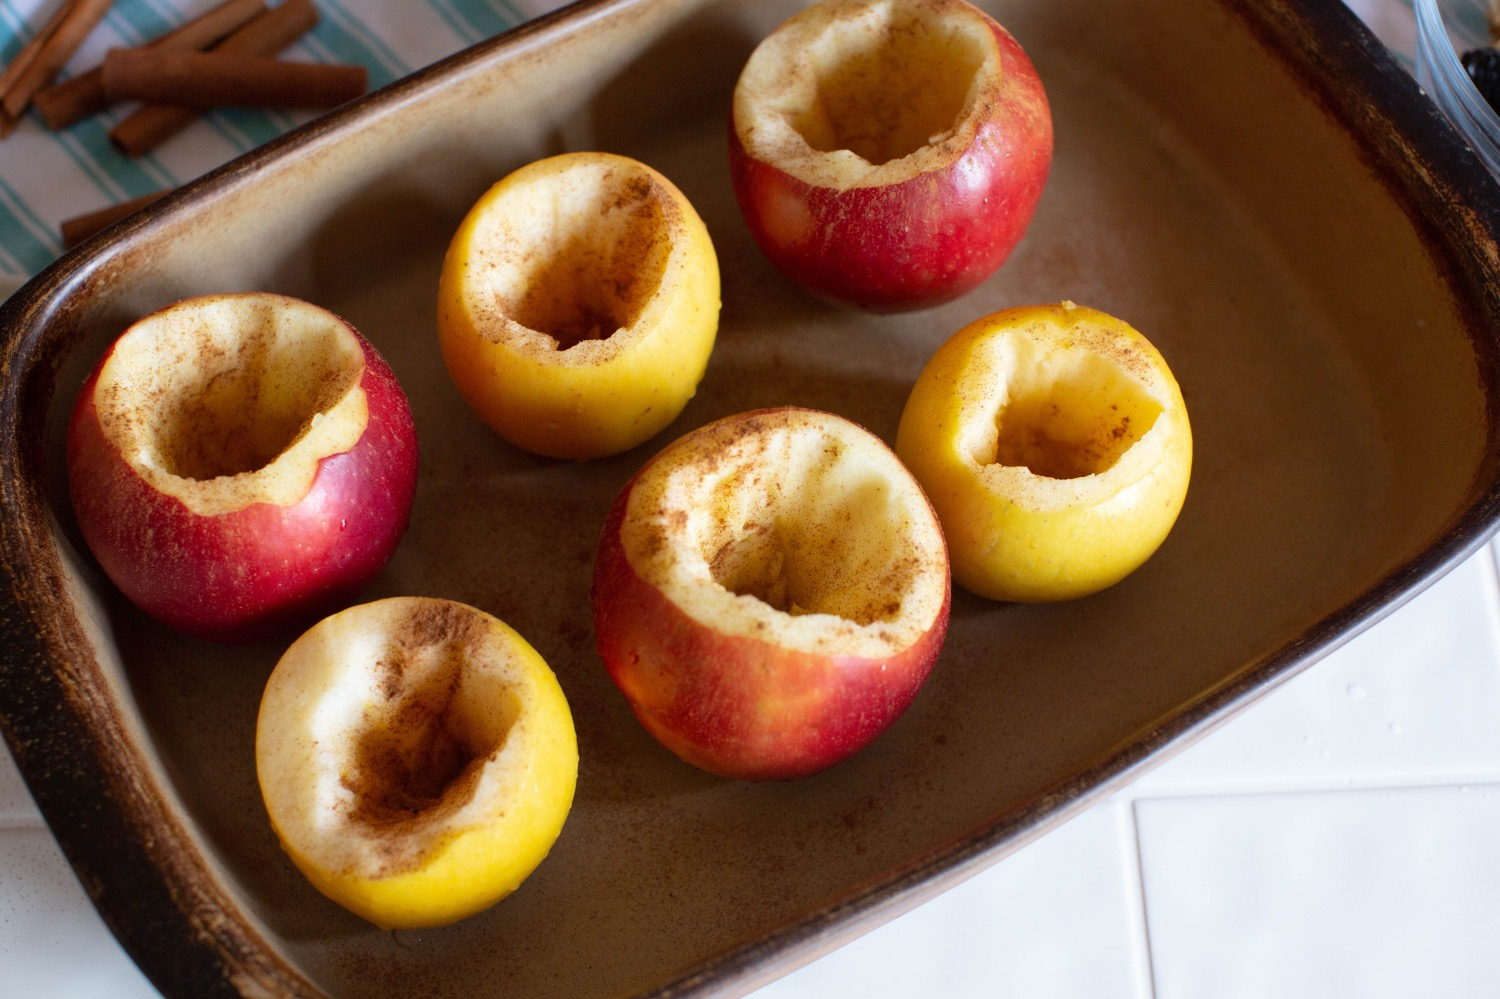 sprinkle hollow baked apples with cinnamon